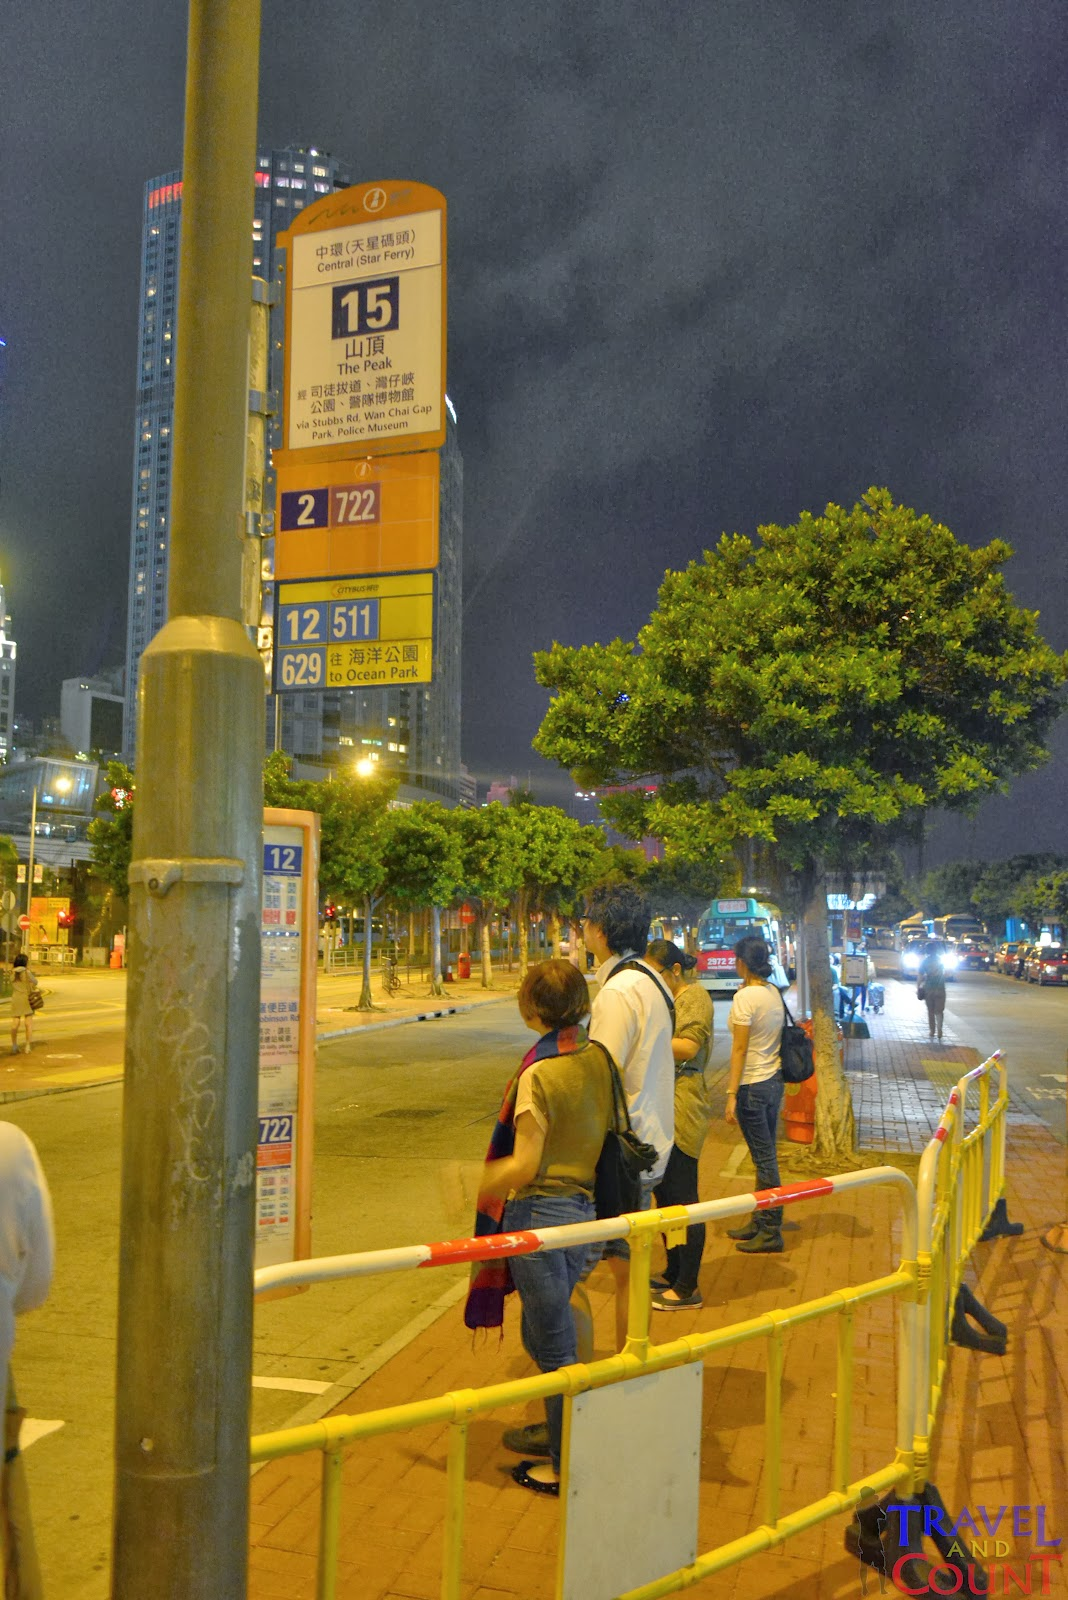 Bus Line Going to the Peak Hong Kong